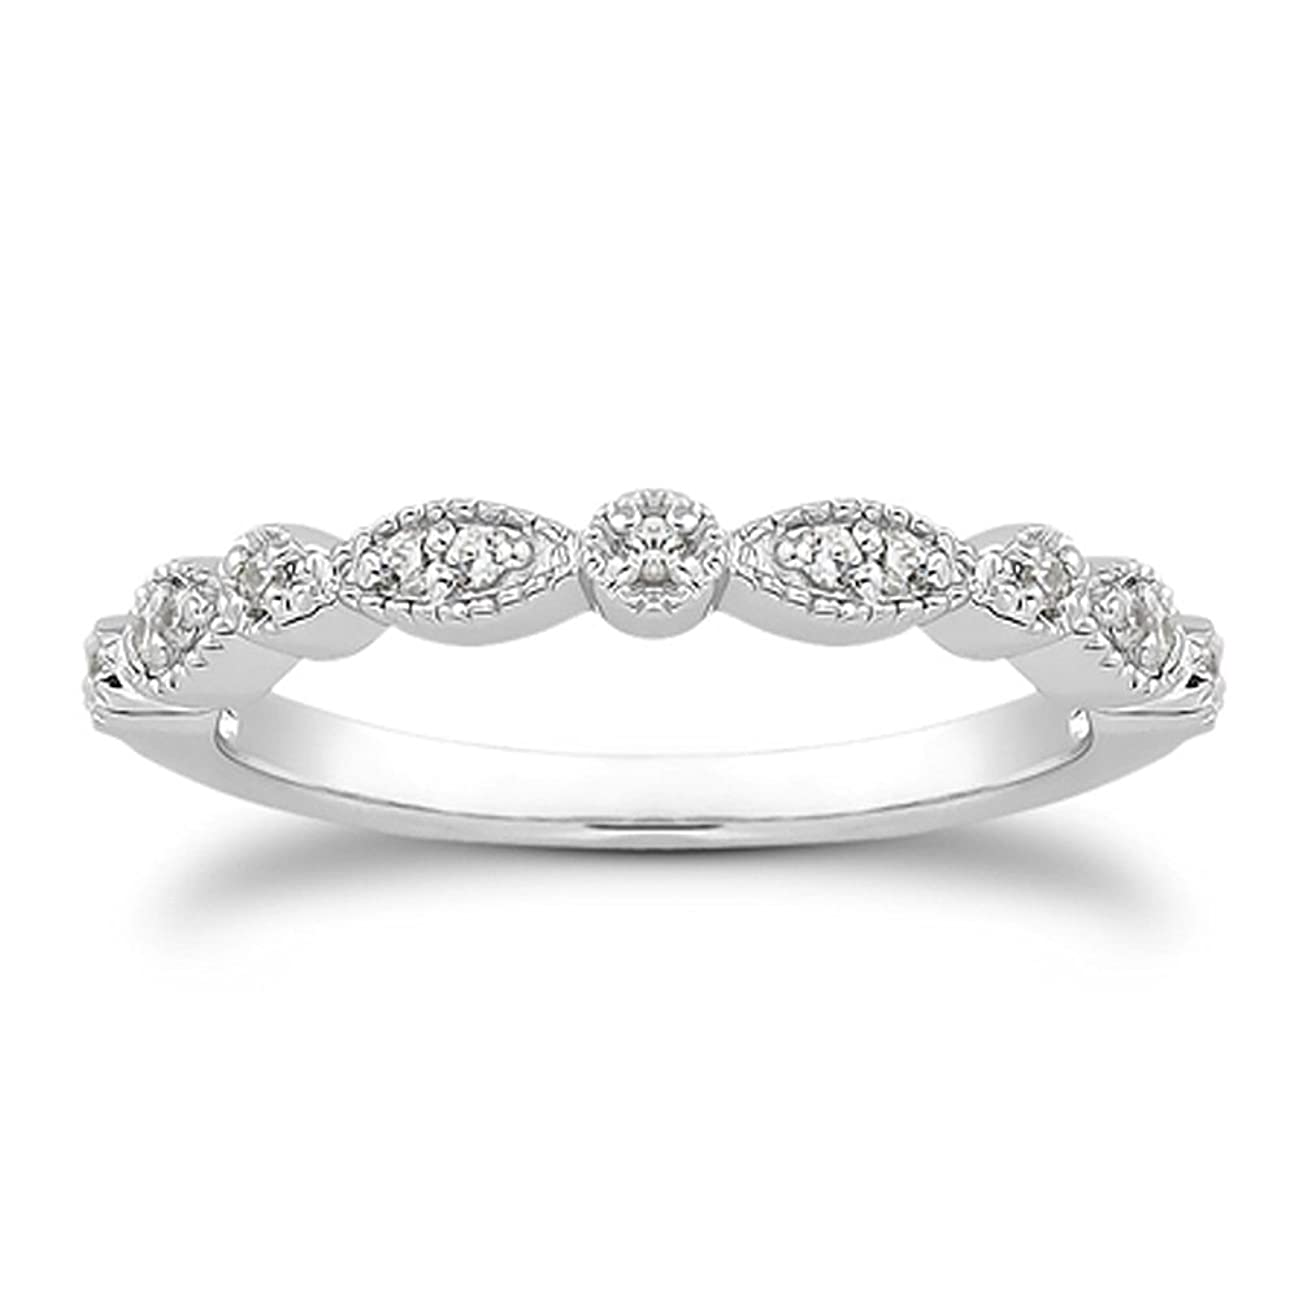 espere Milgrain Marquise & Round Cubic Zirconia Eternity Ring Stacking Infinity Wedding Band Sterling Silver Platium Plated or Rose Gold Plated Size 4-9